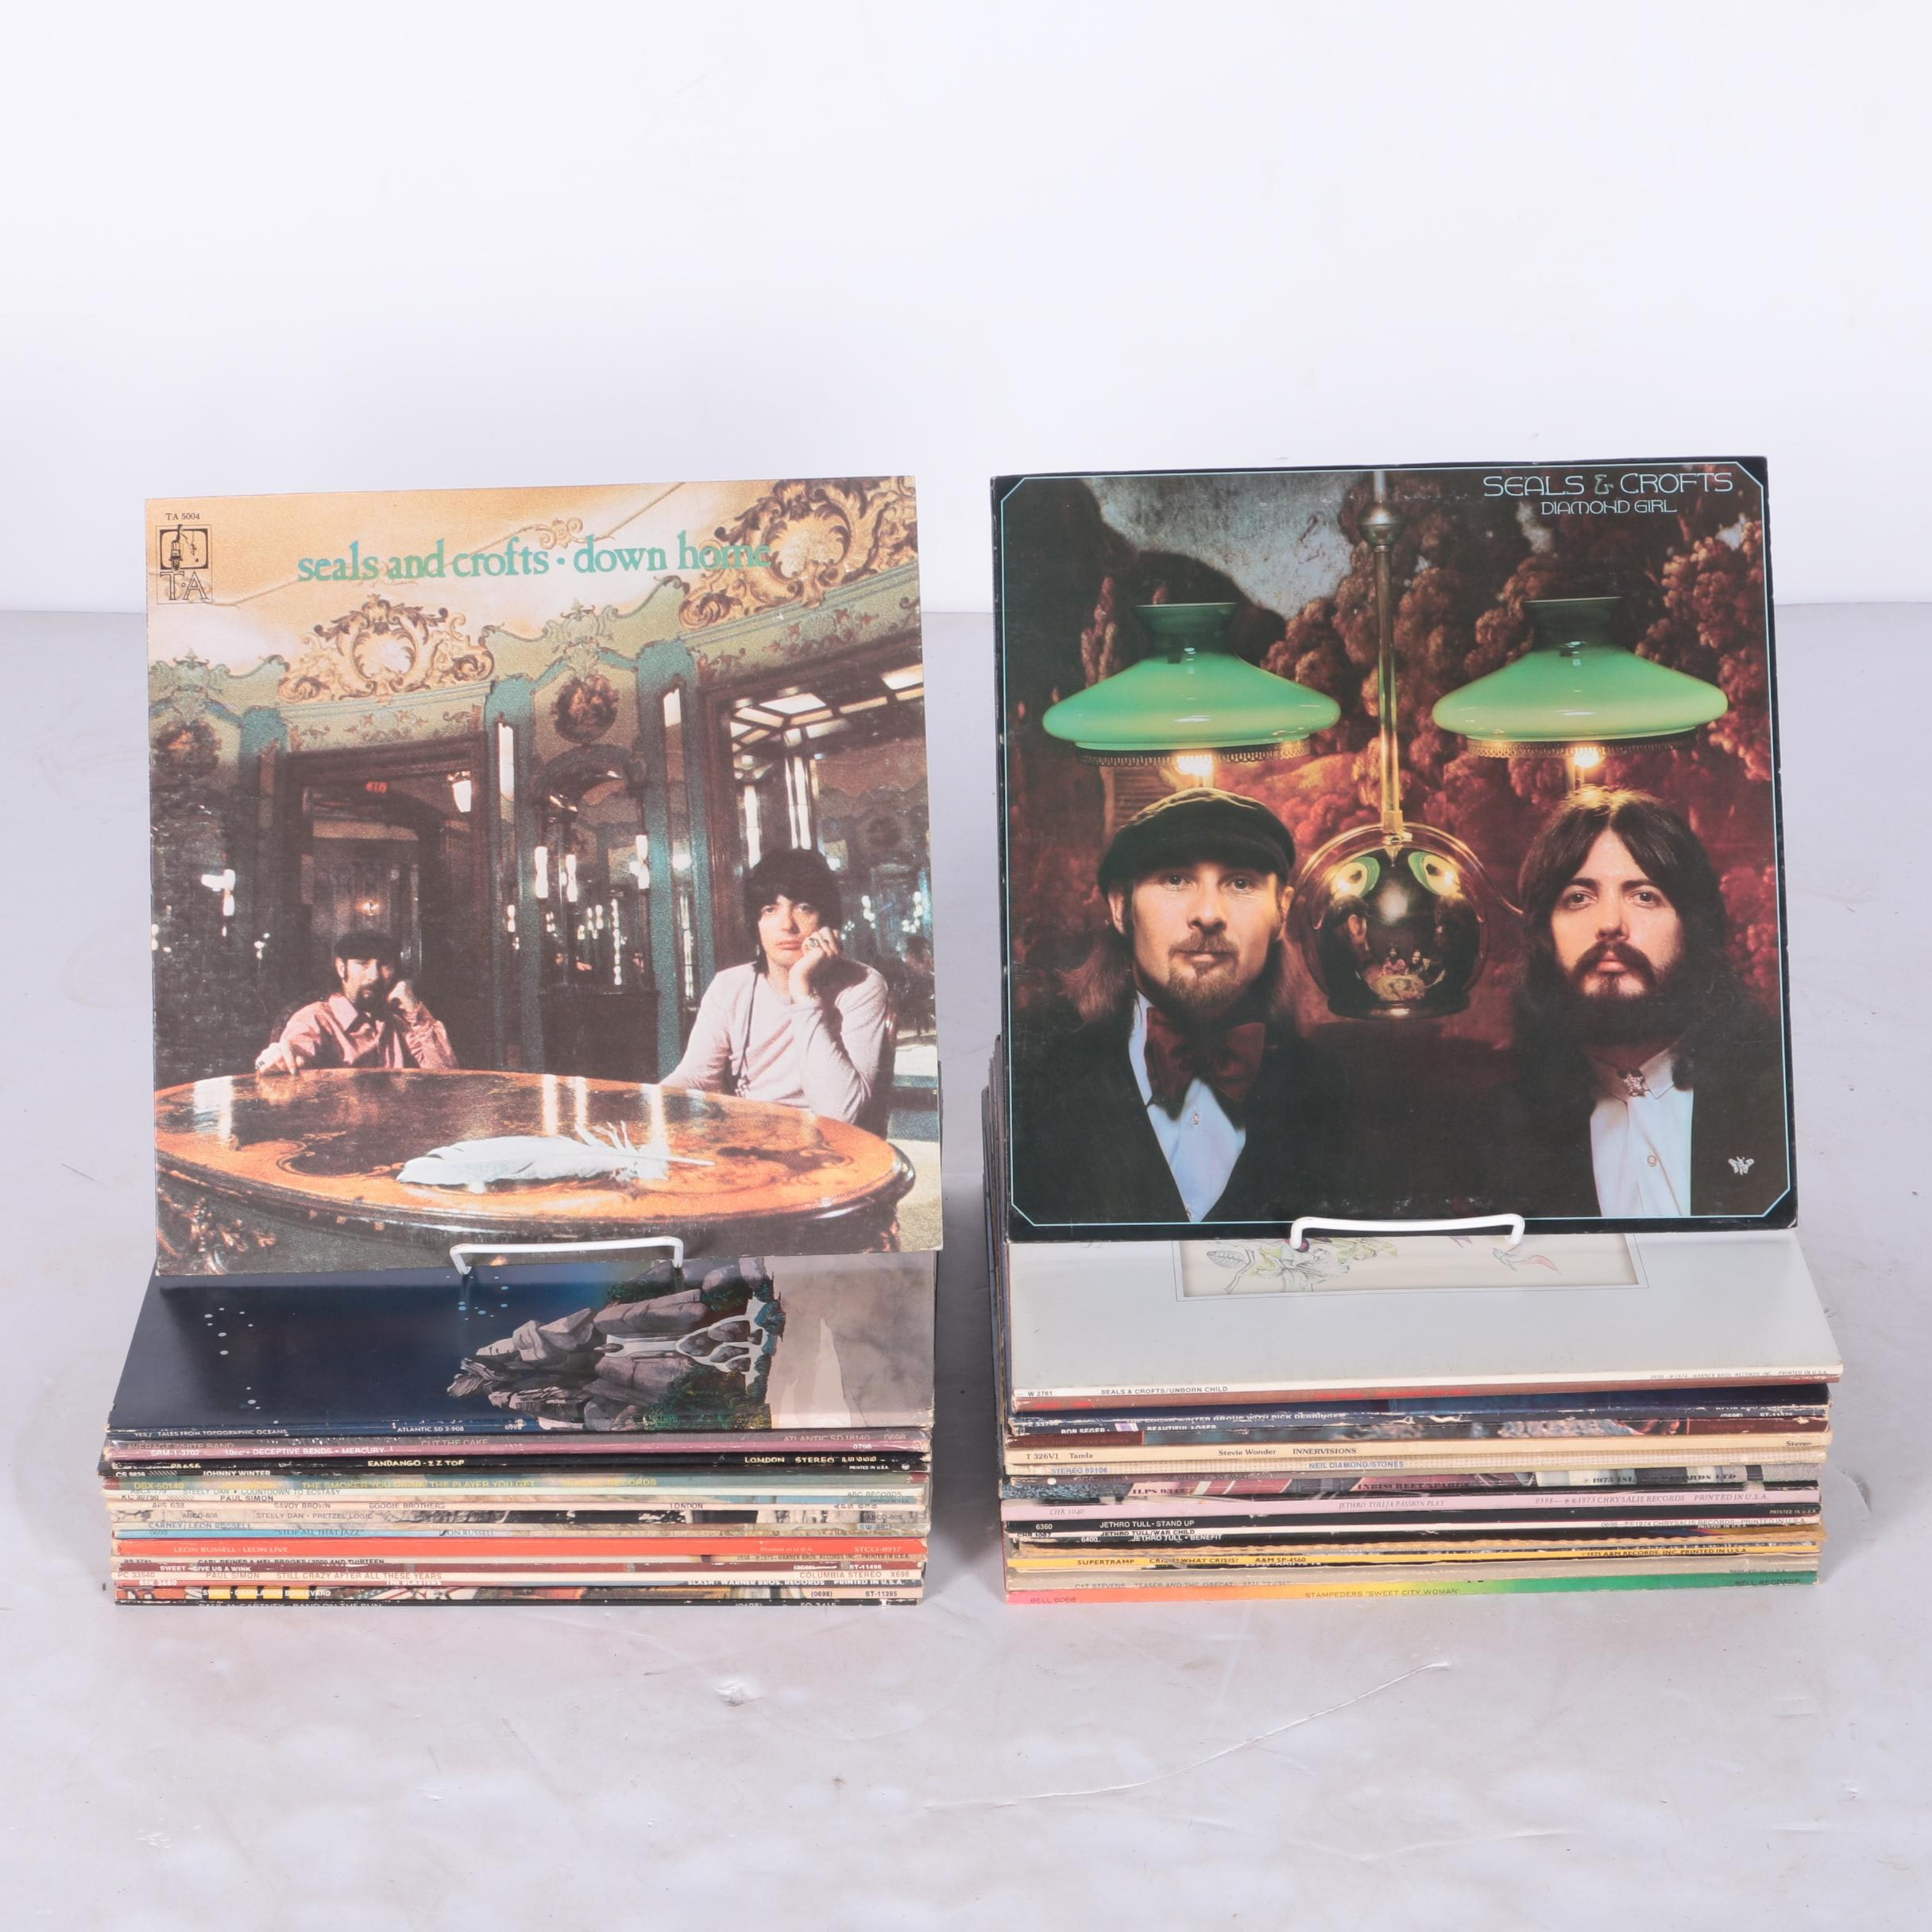 Soft Rock and Other Vintage LPs